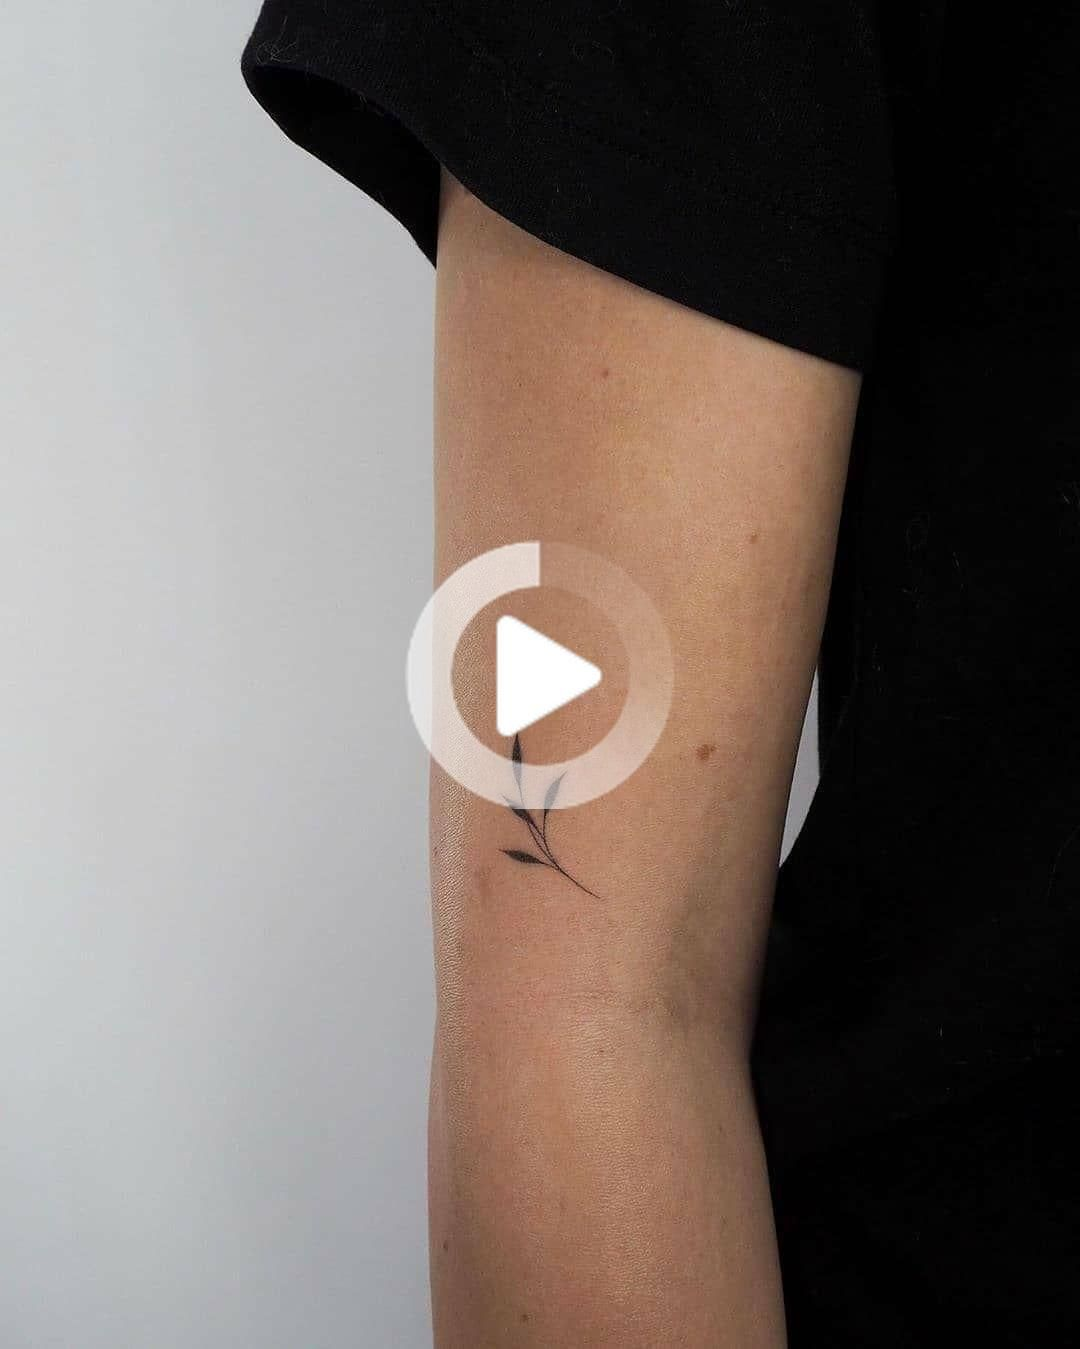 how do you remove inkbox tattoos